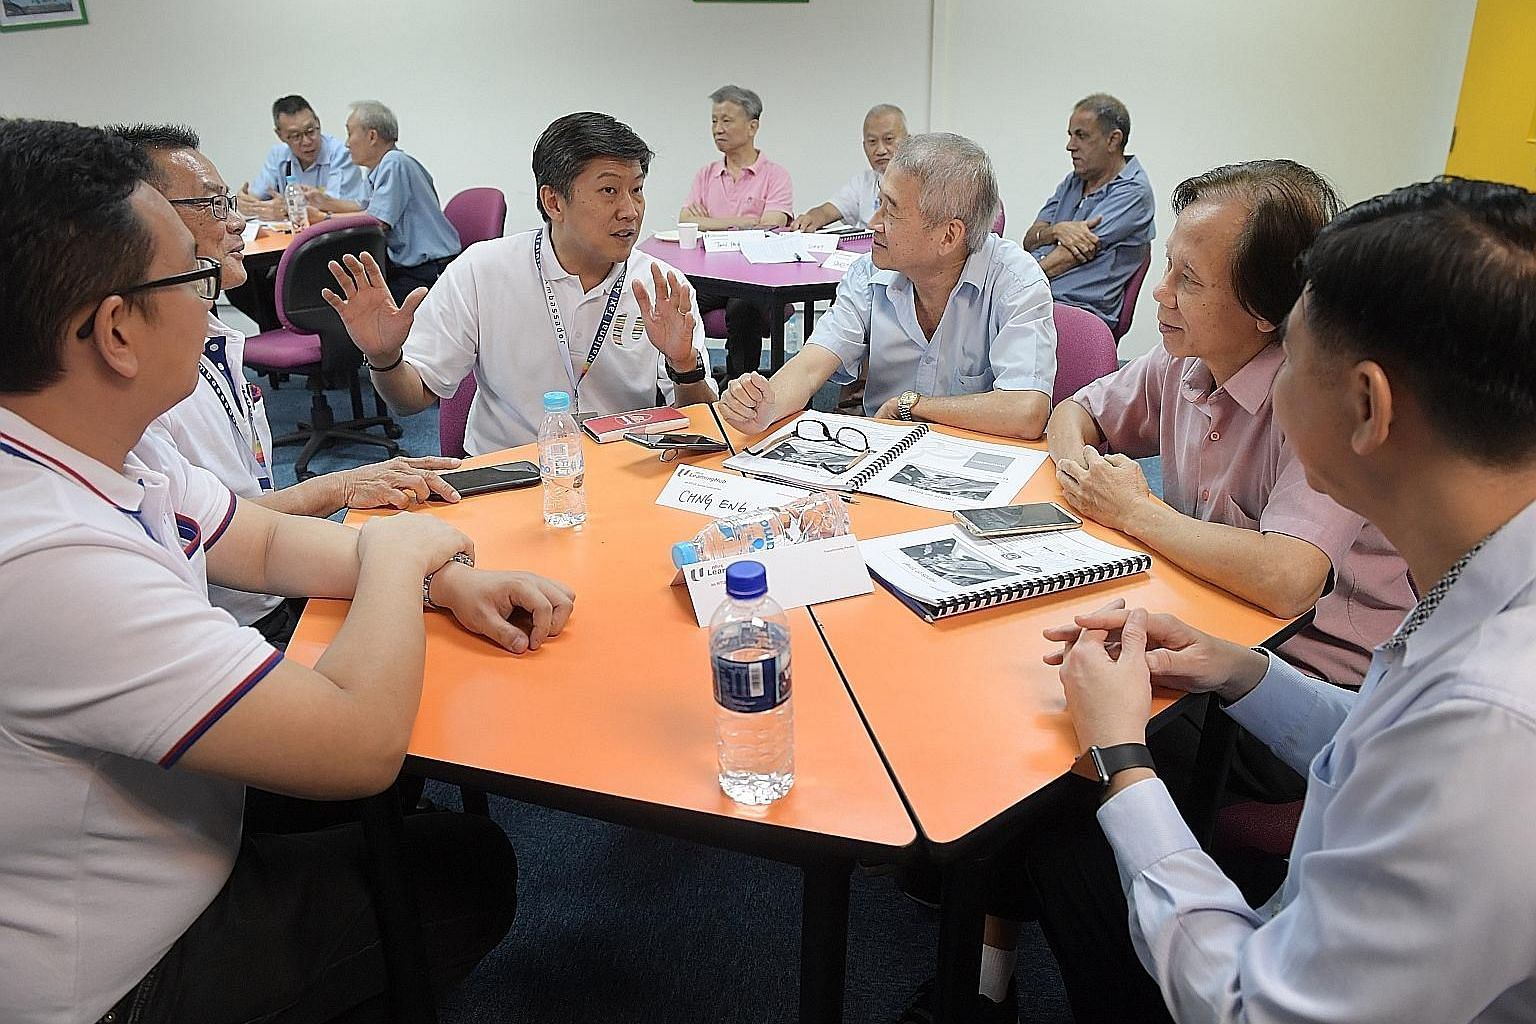 Labour chief Ng Chee Meng (centre) chatting with participants in a digital training class at the CityCab Building yesterday. The customised SkillsFuture for Digital Workplace one-day training programme started about three months ago, and a total of 1